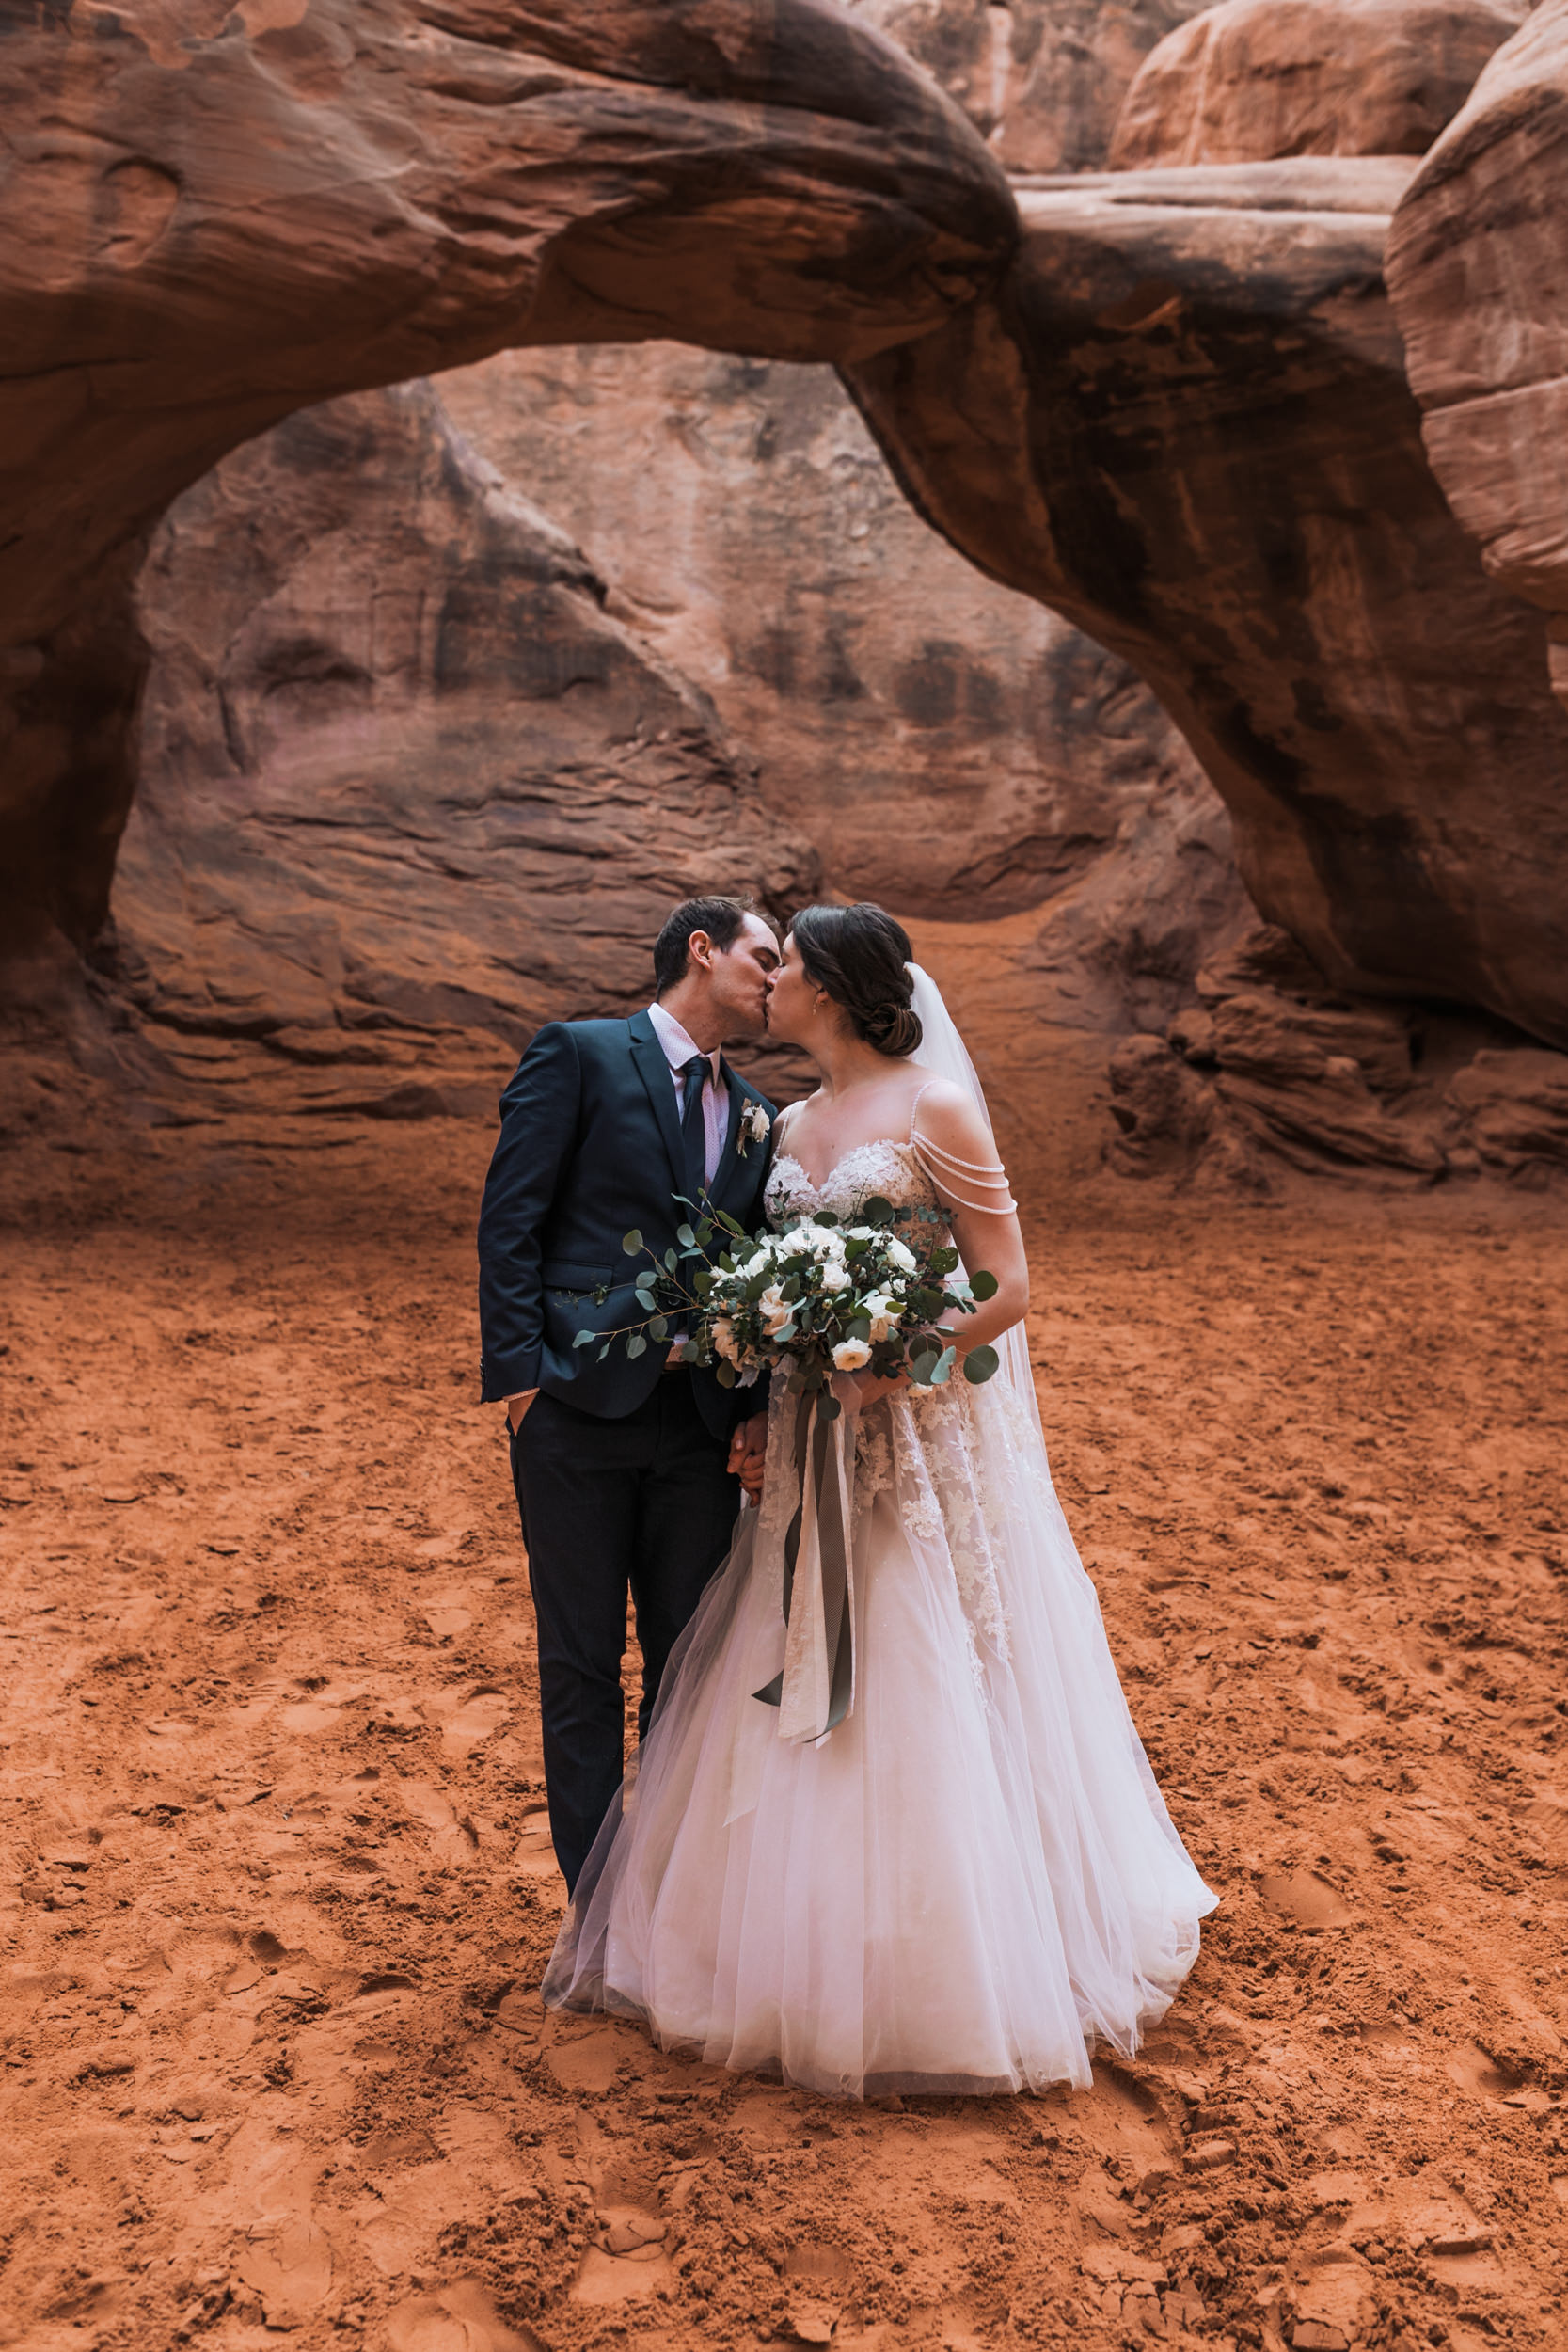 Her bouquet was beautiful. We work with such amazing wedding vendors in Moab.